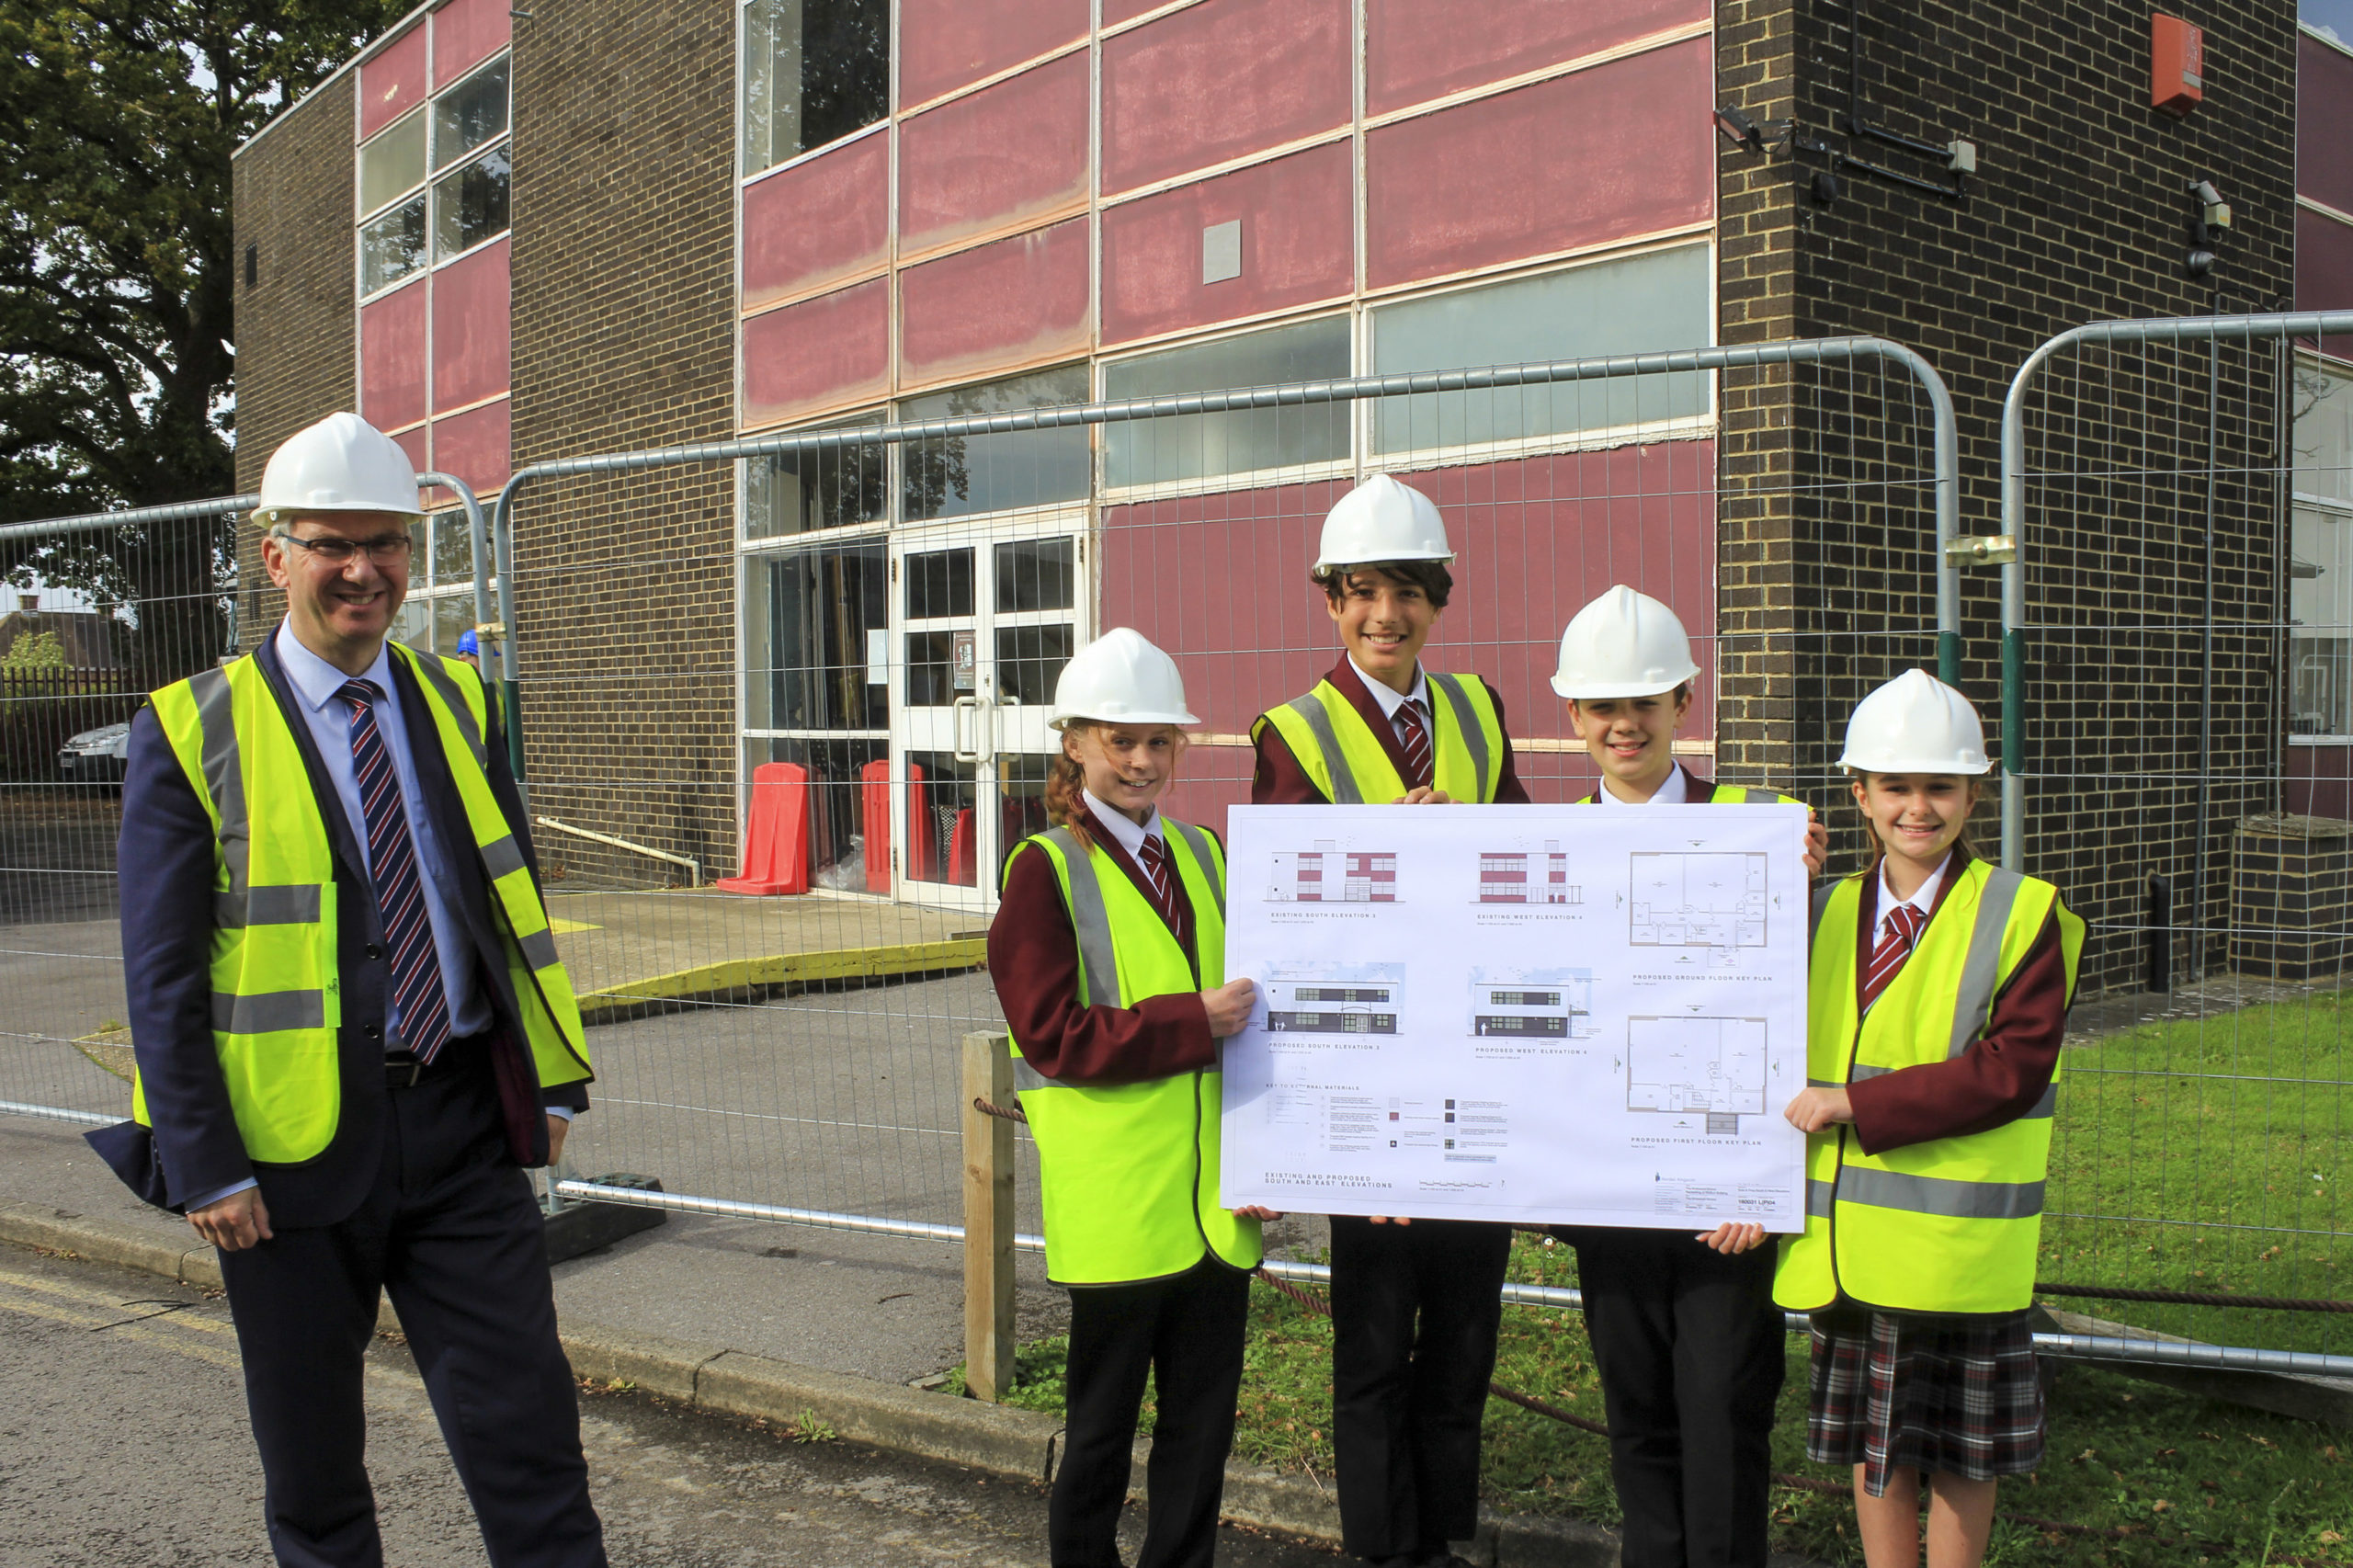 Nigel Pressnell, headteacher of The Arnewood School, with pupils holding the new plans